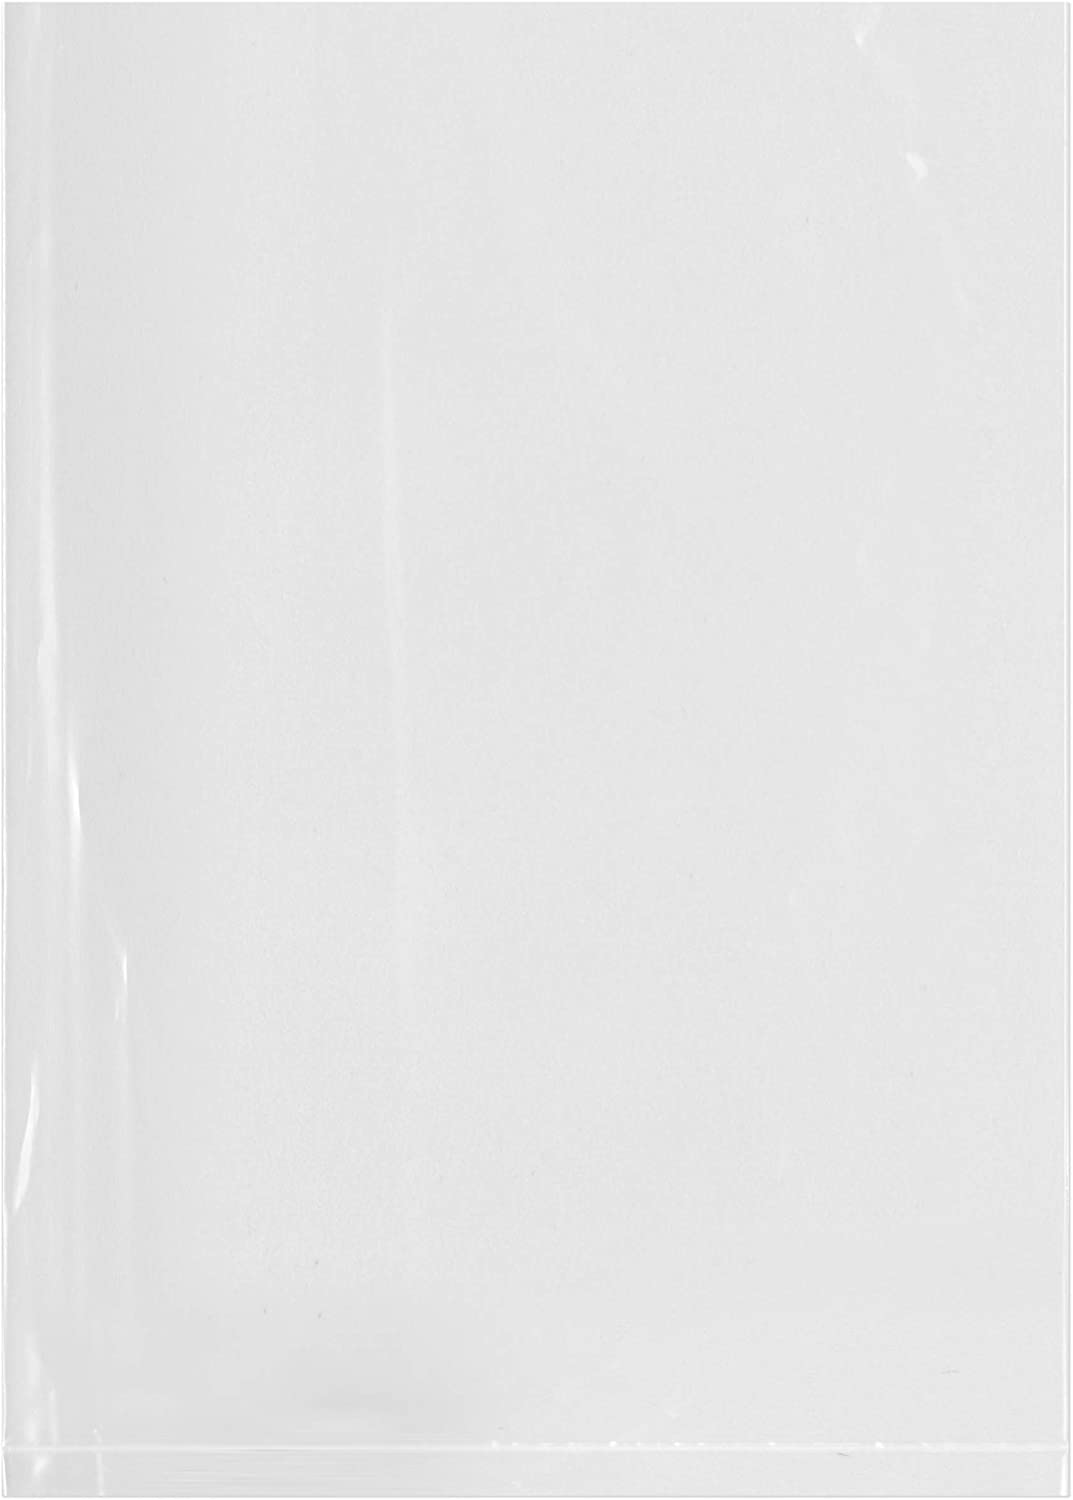 Plymor Flat Open Clear Plastic Poly Bags, 1.25 Mil, 5